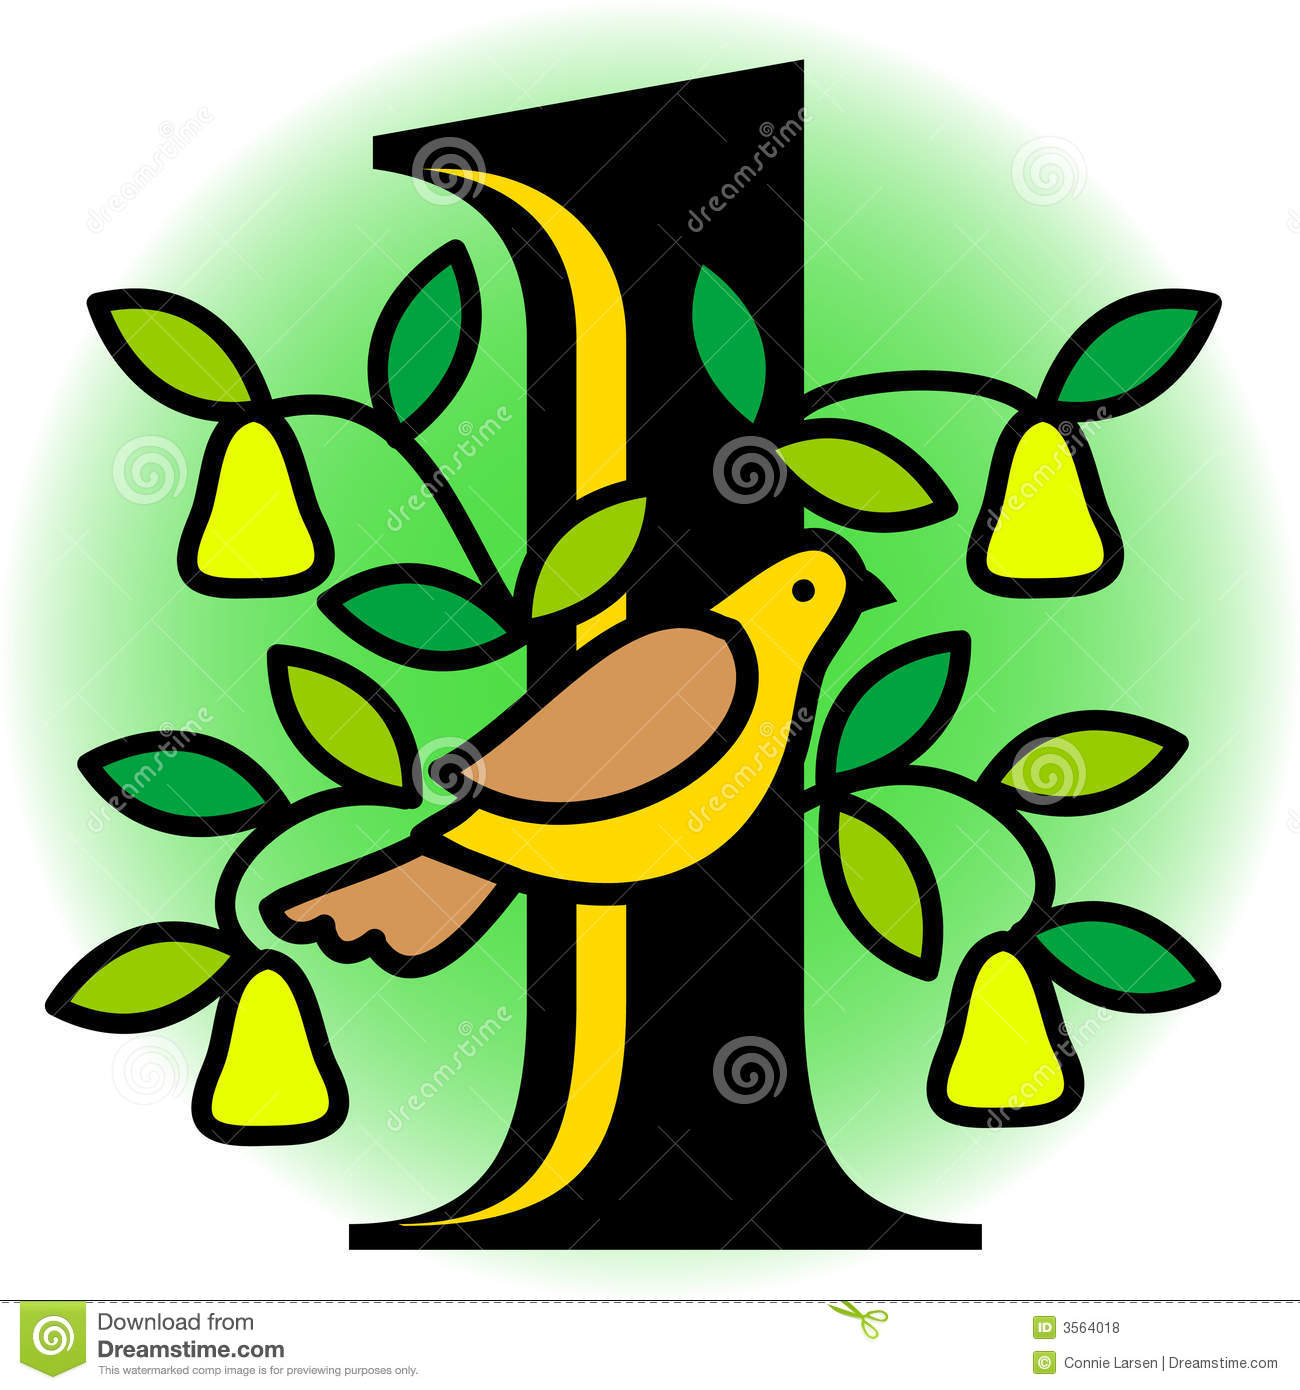 A partridge in a pear tree clipart